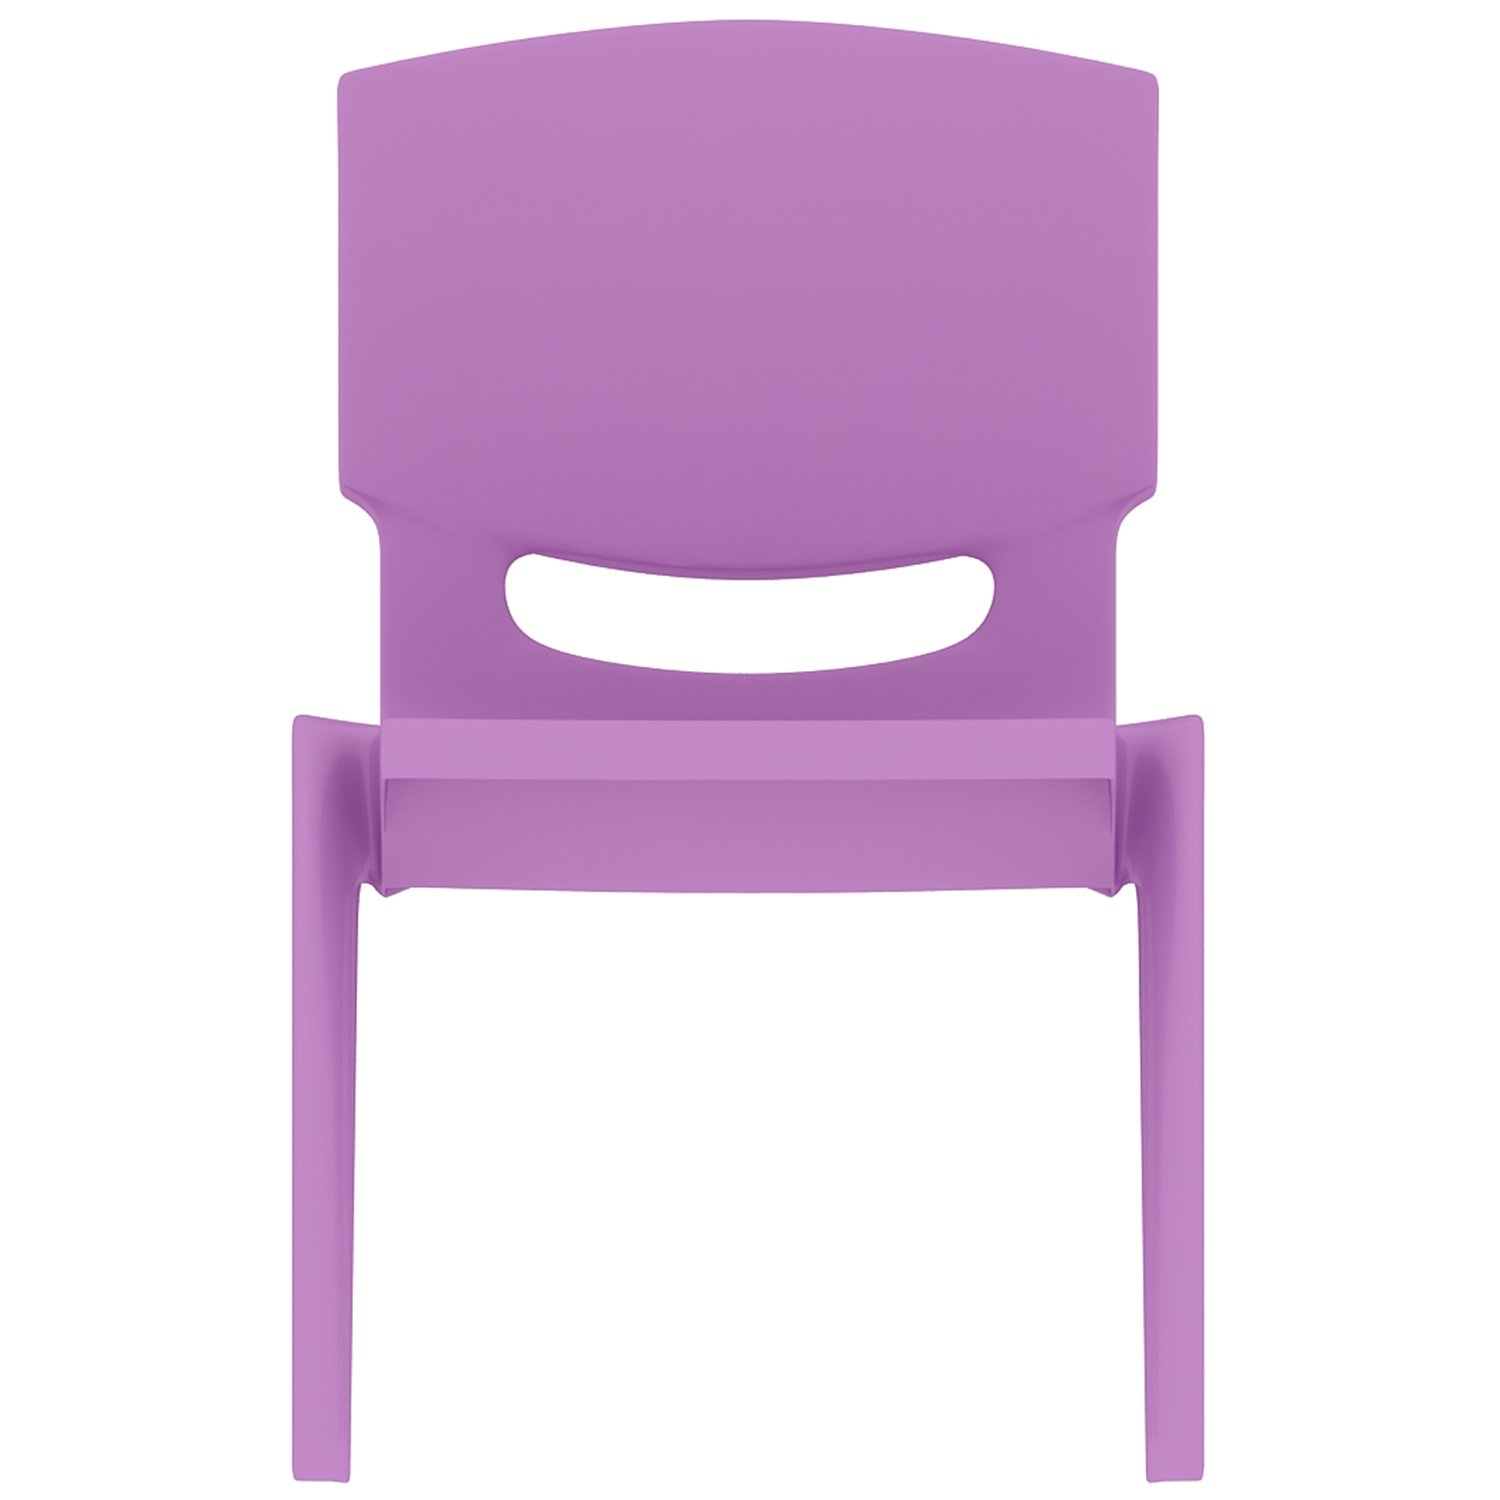 2xhome - Set of Four (4) - Purple - Kids Size Plastic Side Chair 10'' Seat Height Purple Childs Chair Childrens Room School Chairs No Arm Arms Armless Molded Plastic Seat Stackable by 2xhome (Image #6)